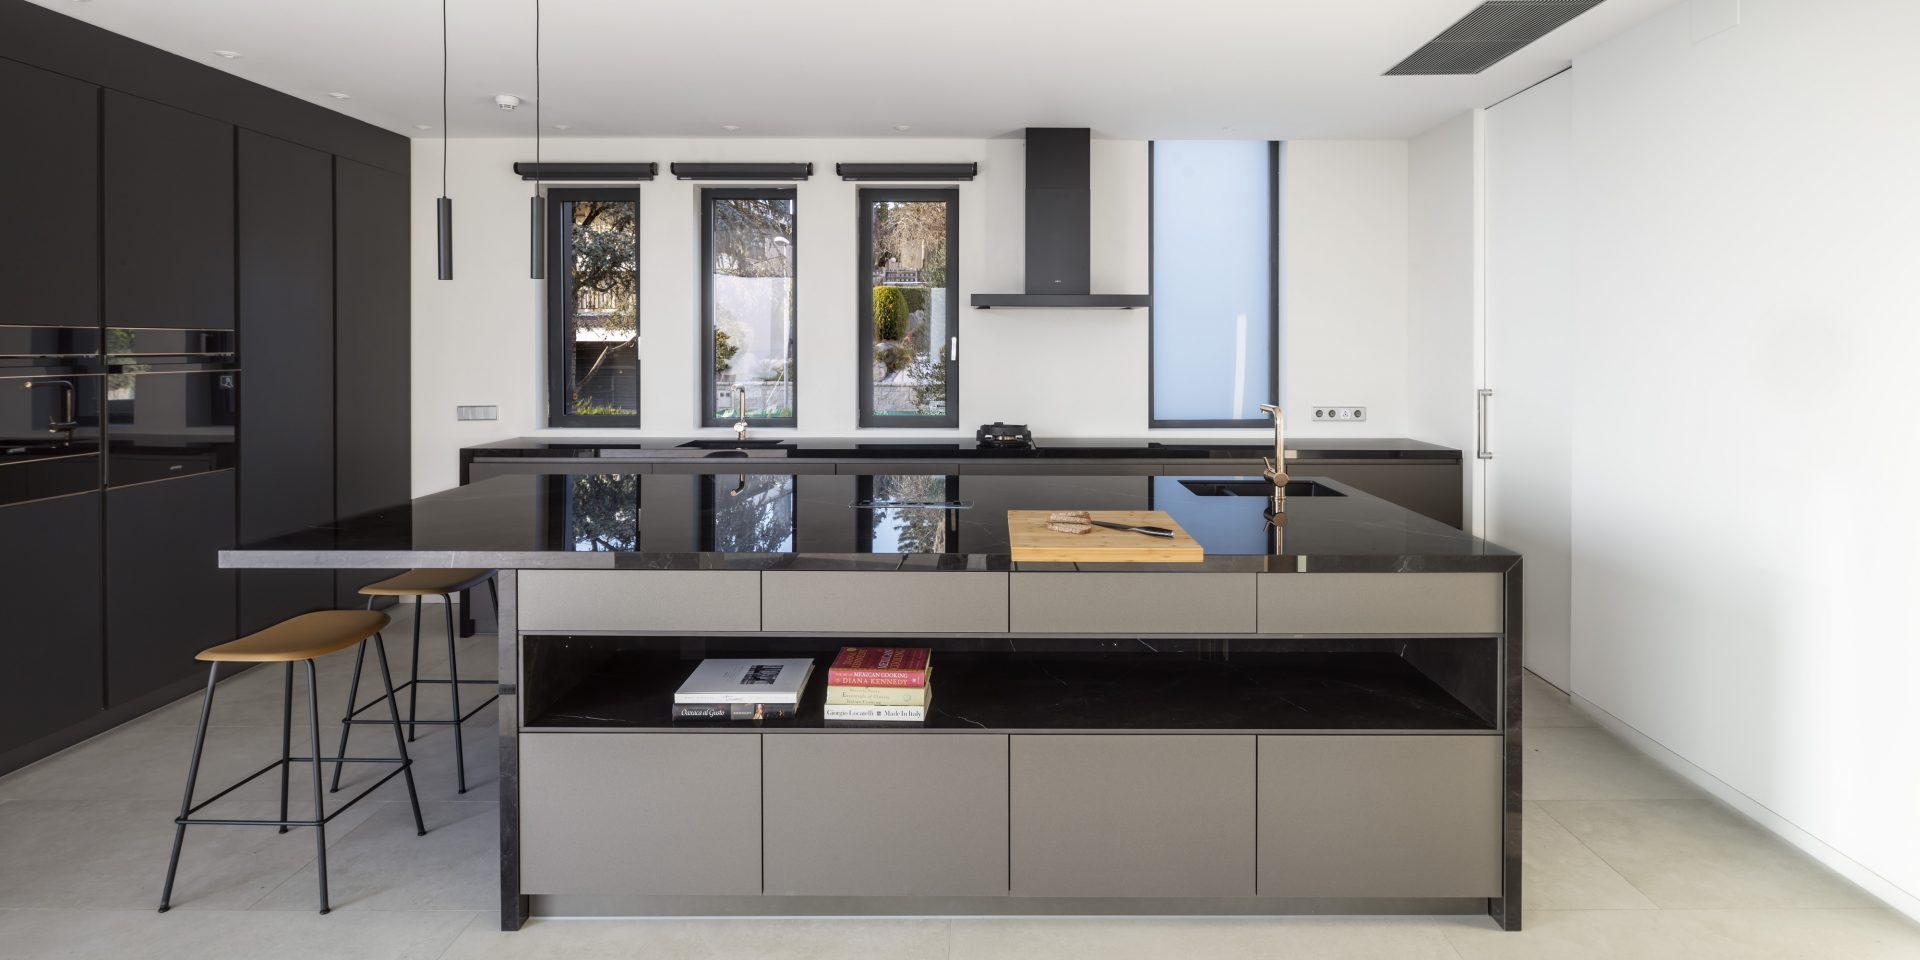 modern-kitchen-home-renovation-alella-zest-architecture-Adrià Goula